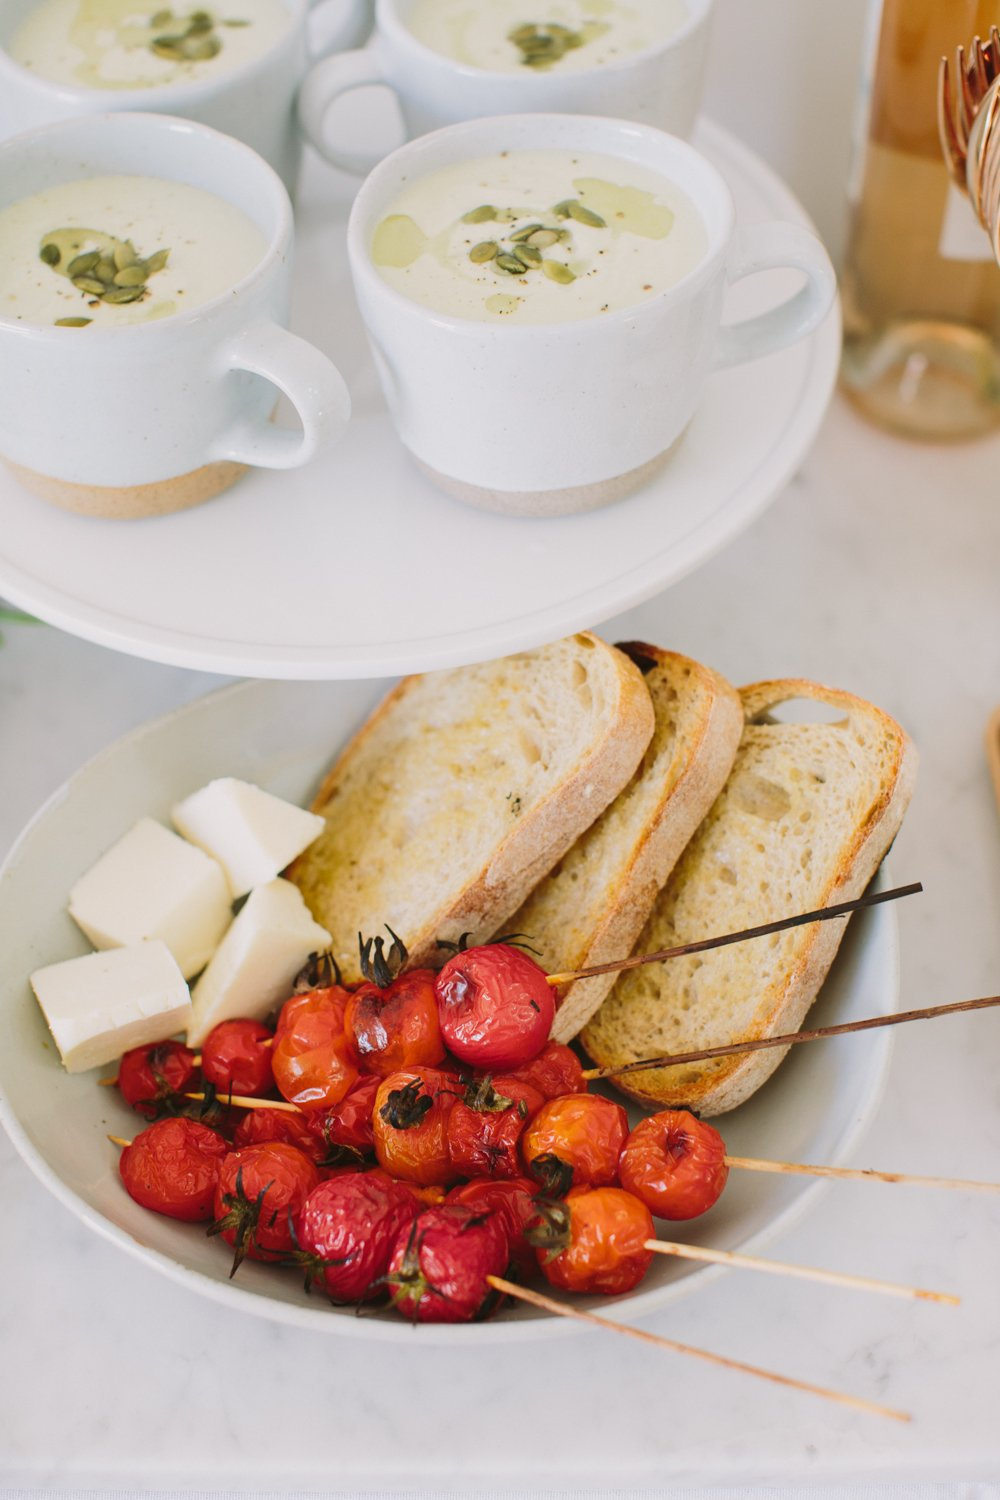 Crostini, mozzarella and roasted tomatoes in a bowl next to a tray of creamy white soup in mugs